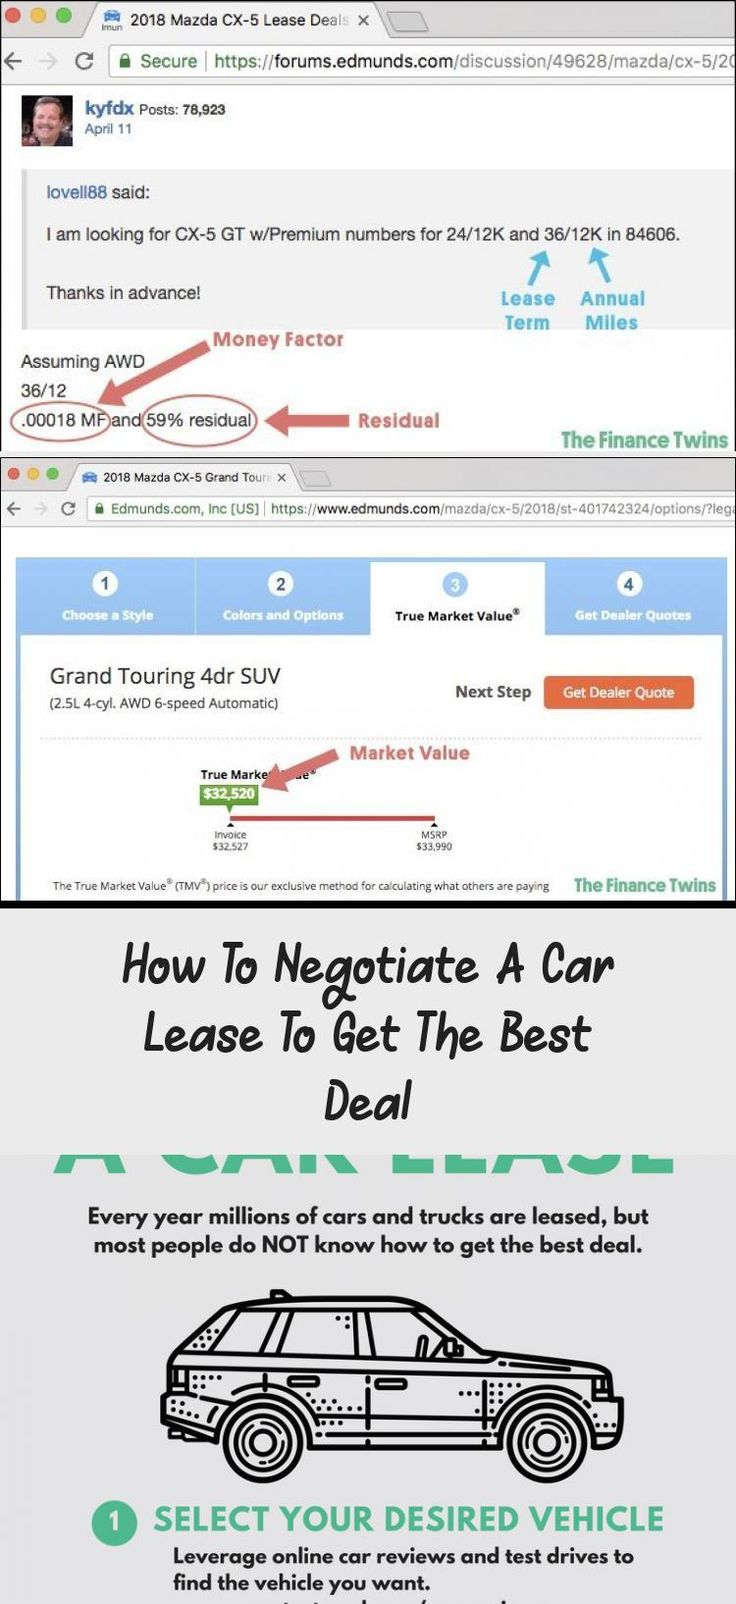 How To Negotiate A Car Lease To Get The Best Deal in 2020